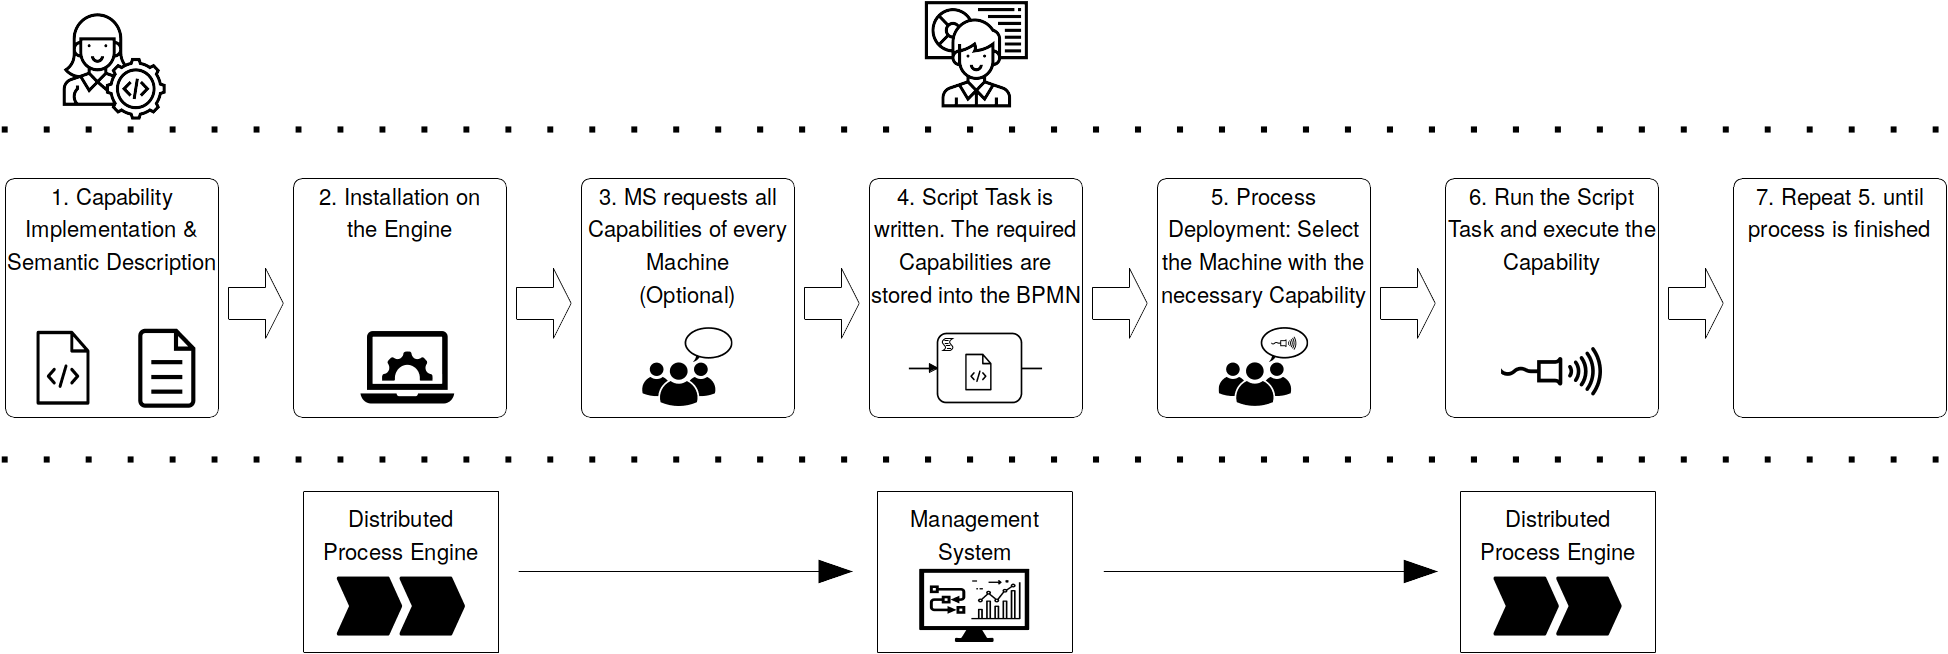 Capability Process Overview